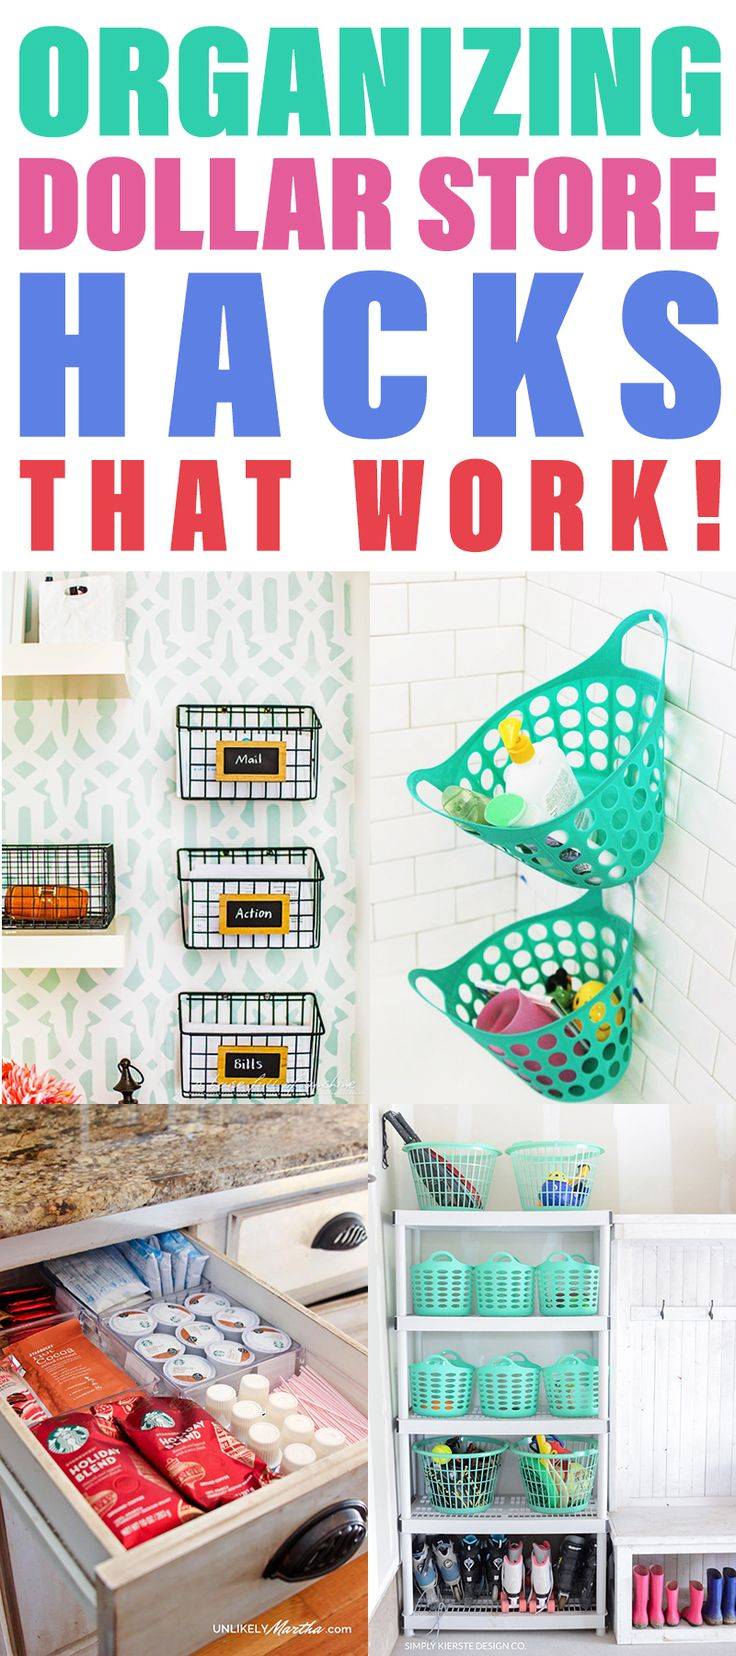 Organizing With Dollar Store Hacks That WORK